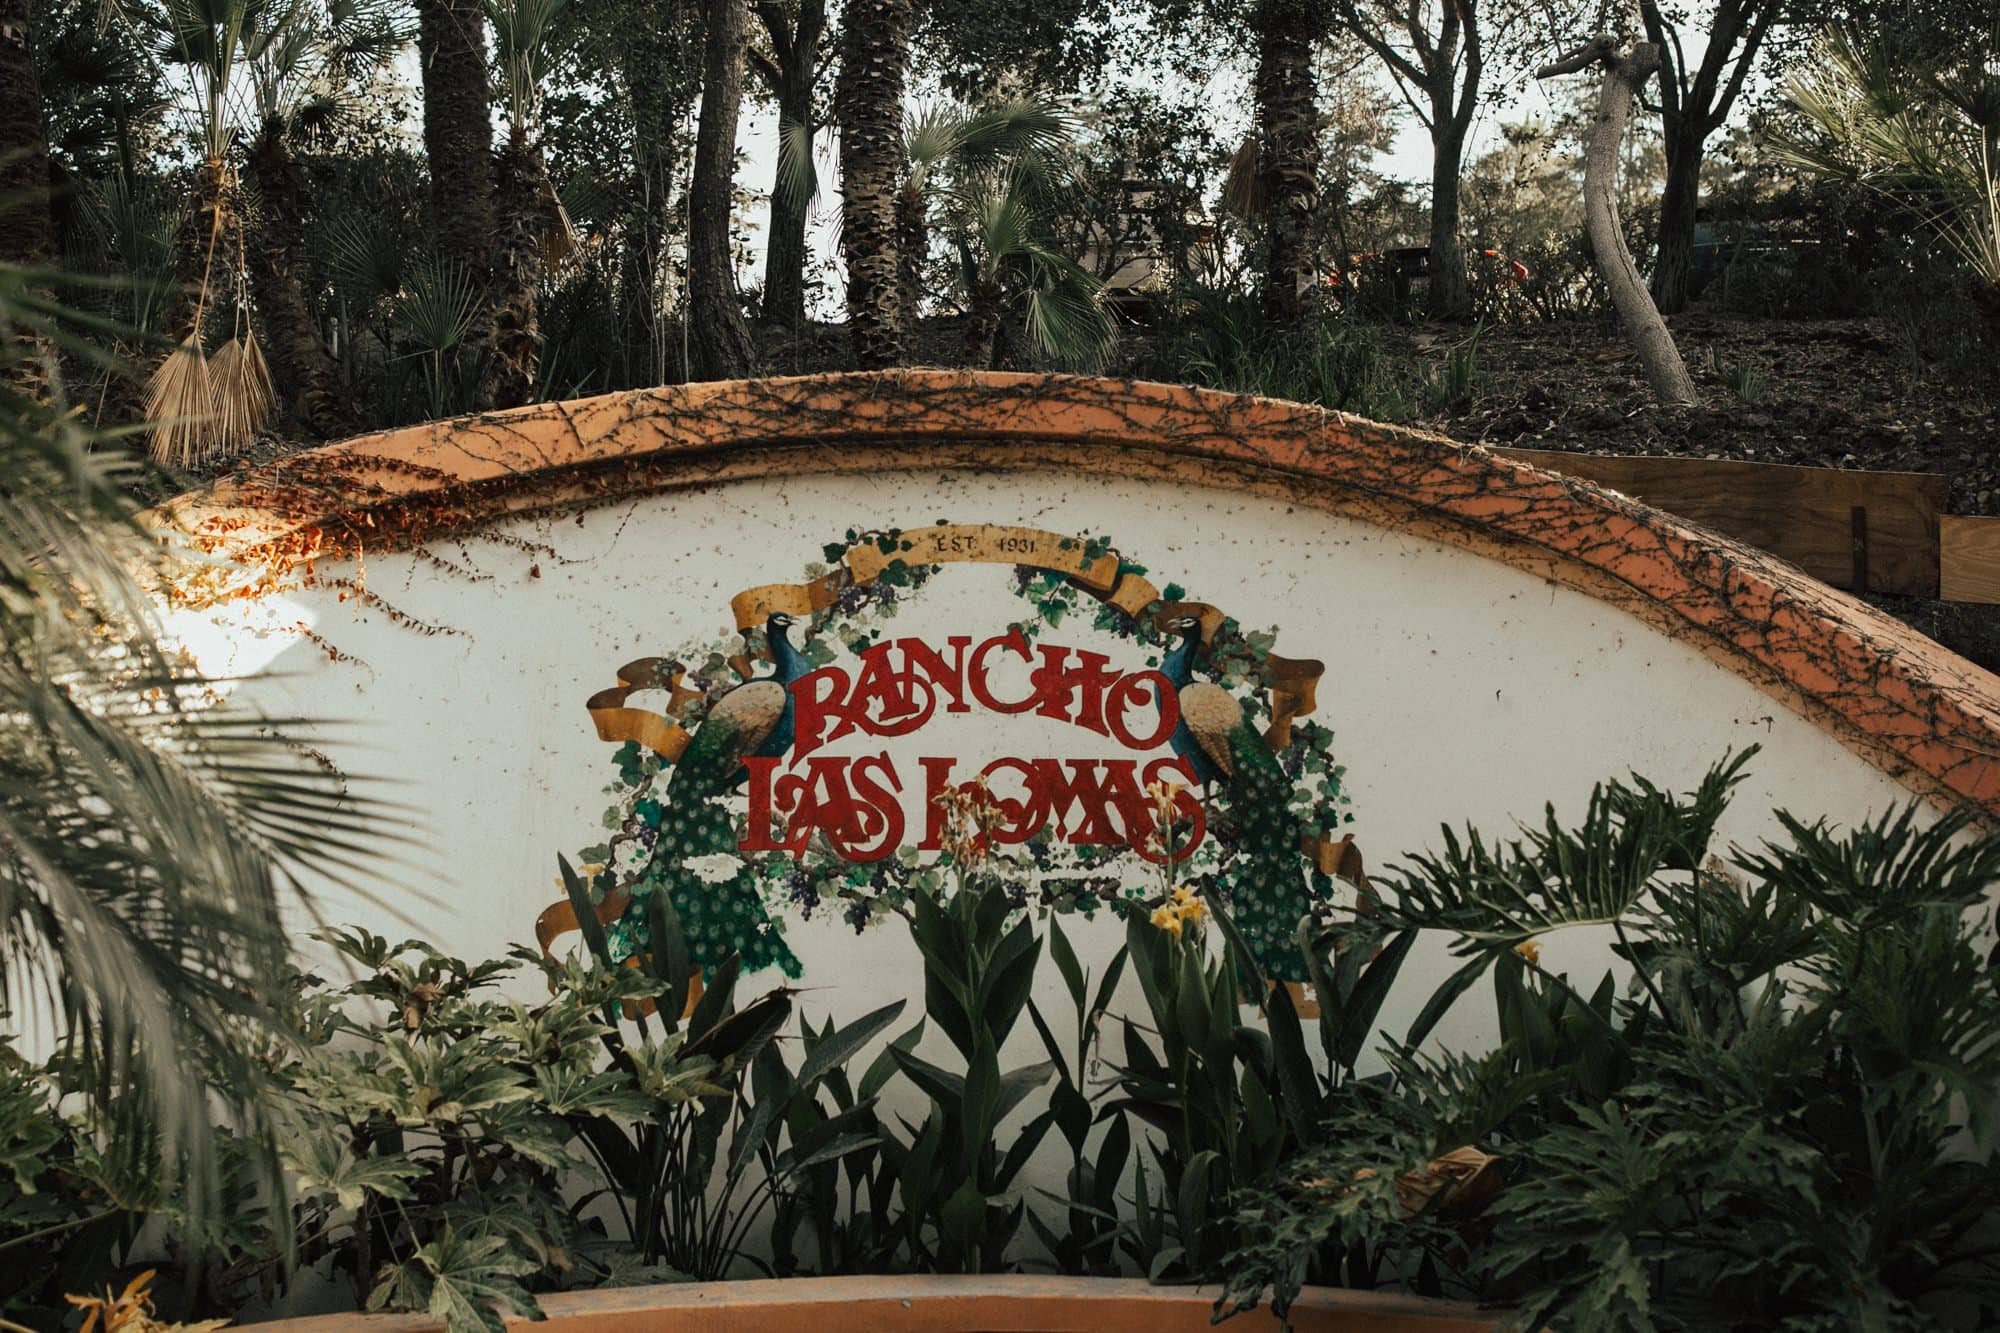 rancho las lomas entrance sign